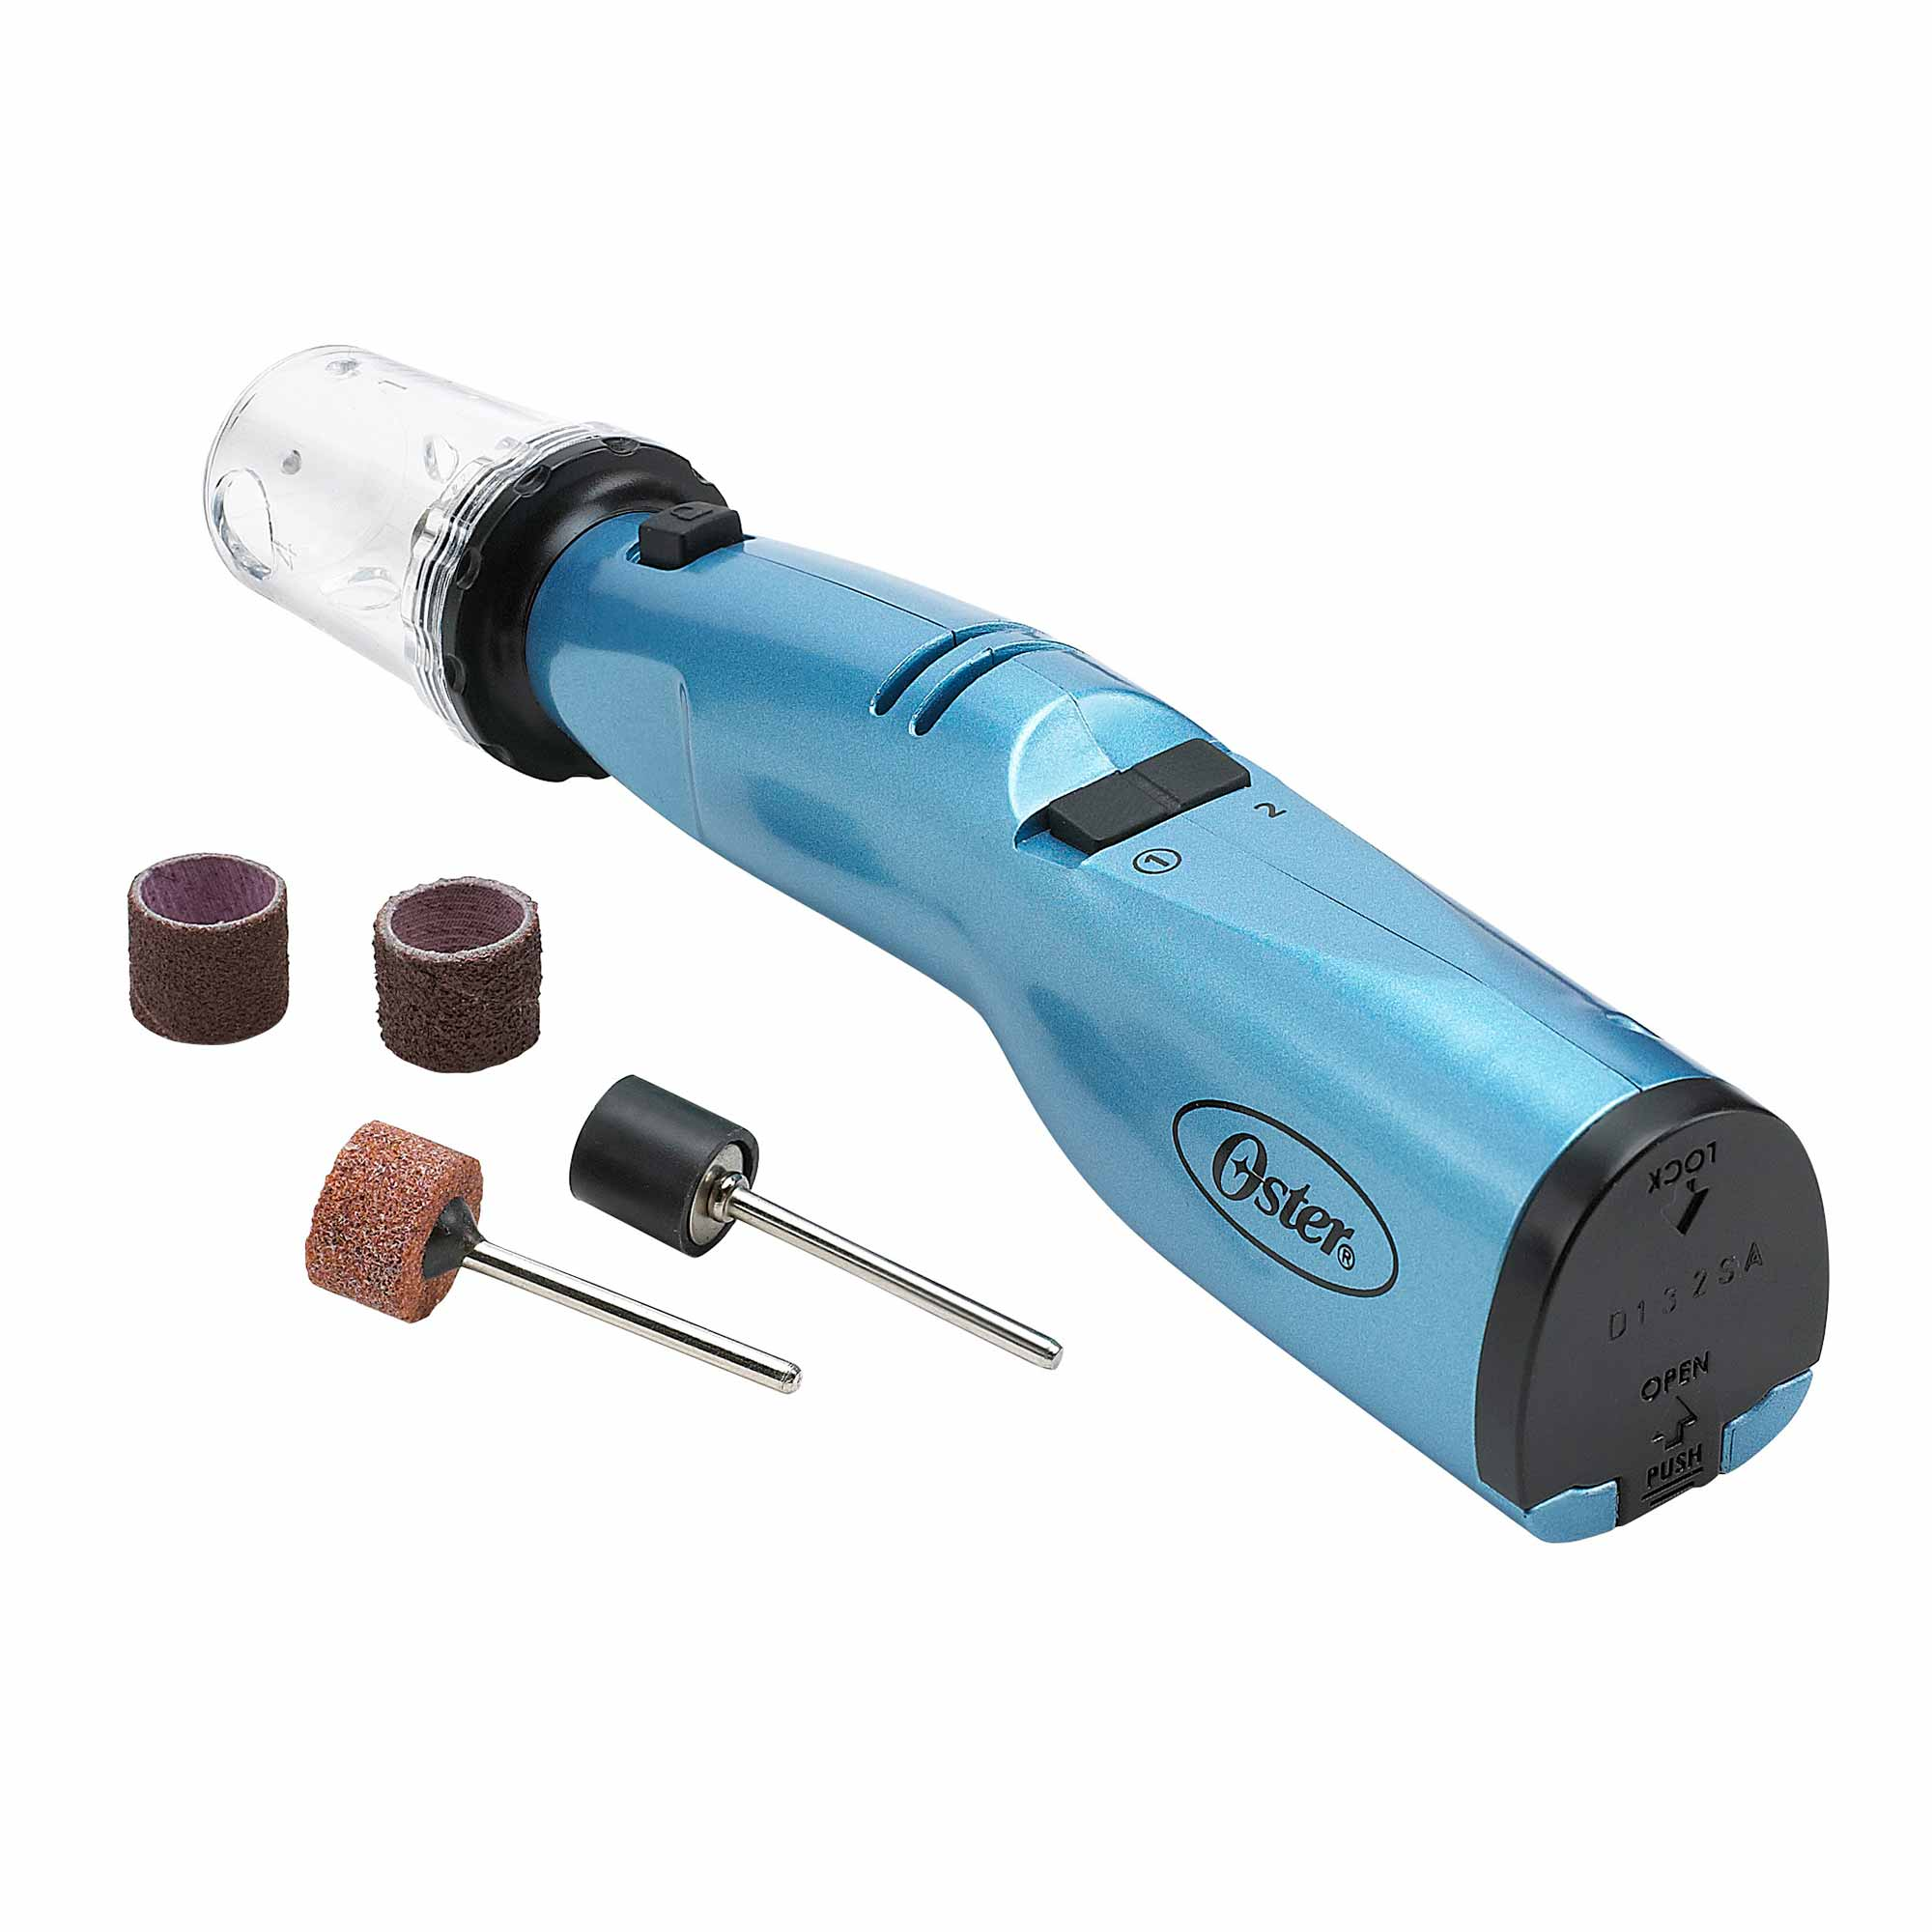 Oster Animal Care Gentle Paws Premium Pet Nail Trimmer (78129-501)